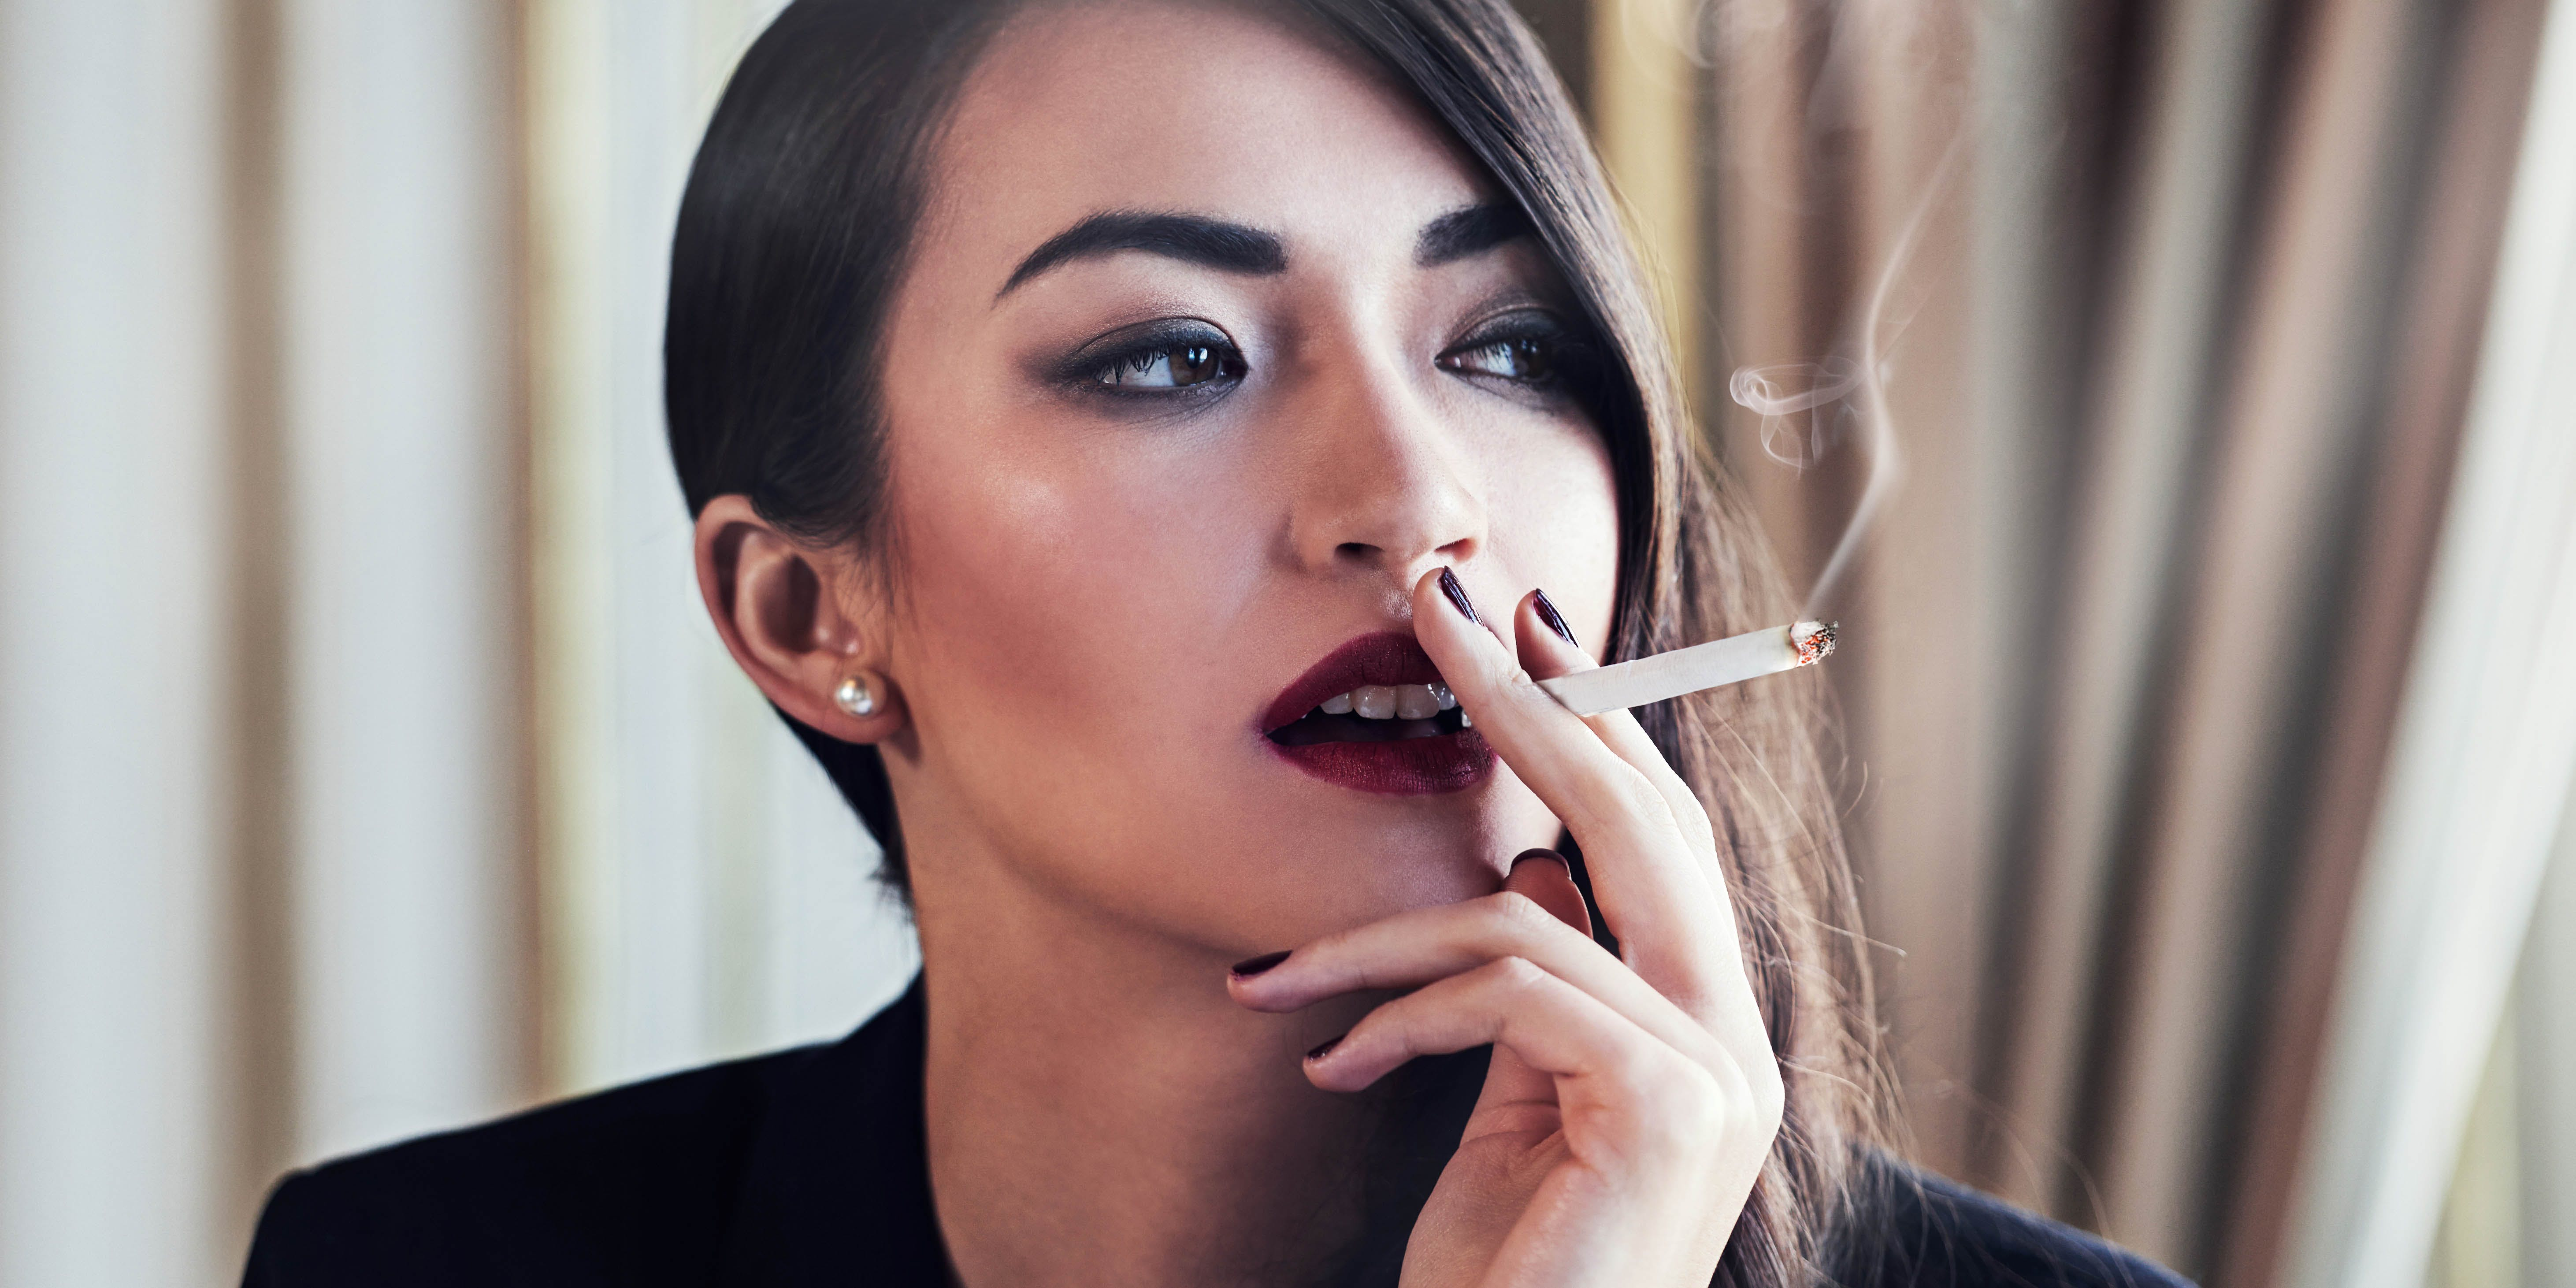 The Marijuana Show, aka the Shark Tank of Marijuana, is looking for the next weed millionaire. Here, we see a woman smoking a joint.